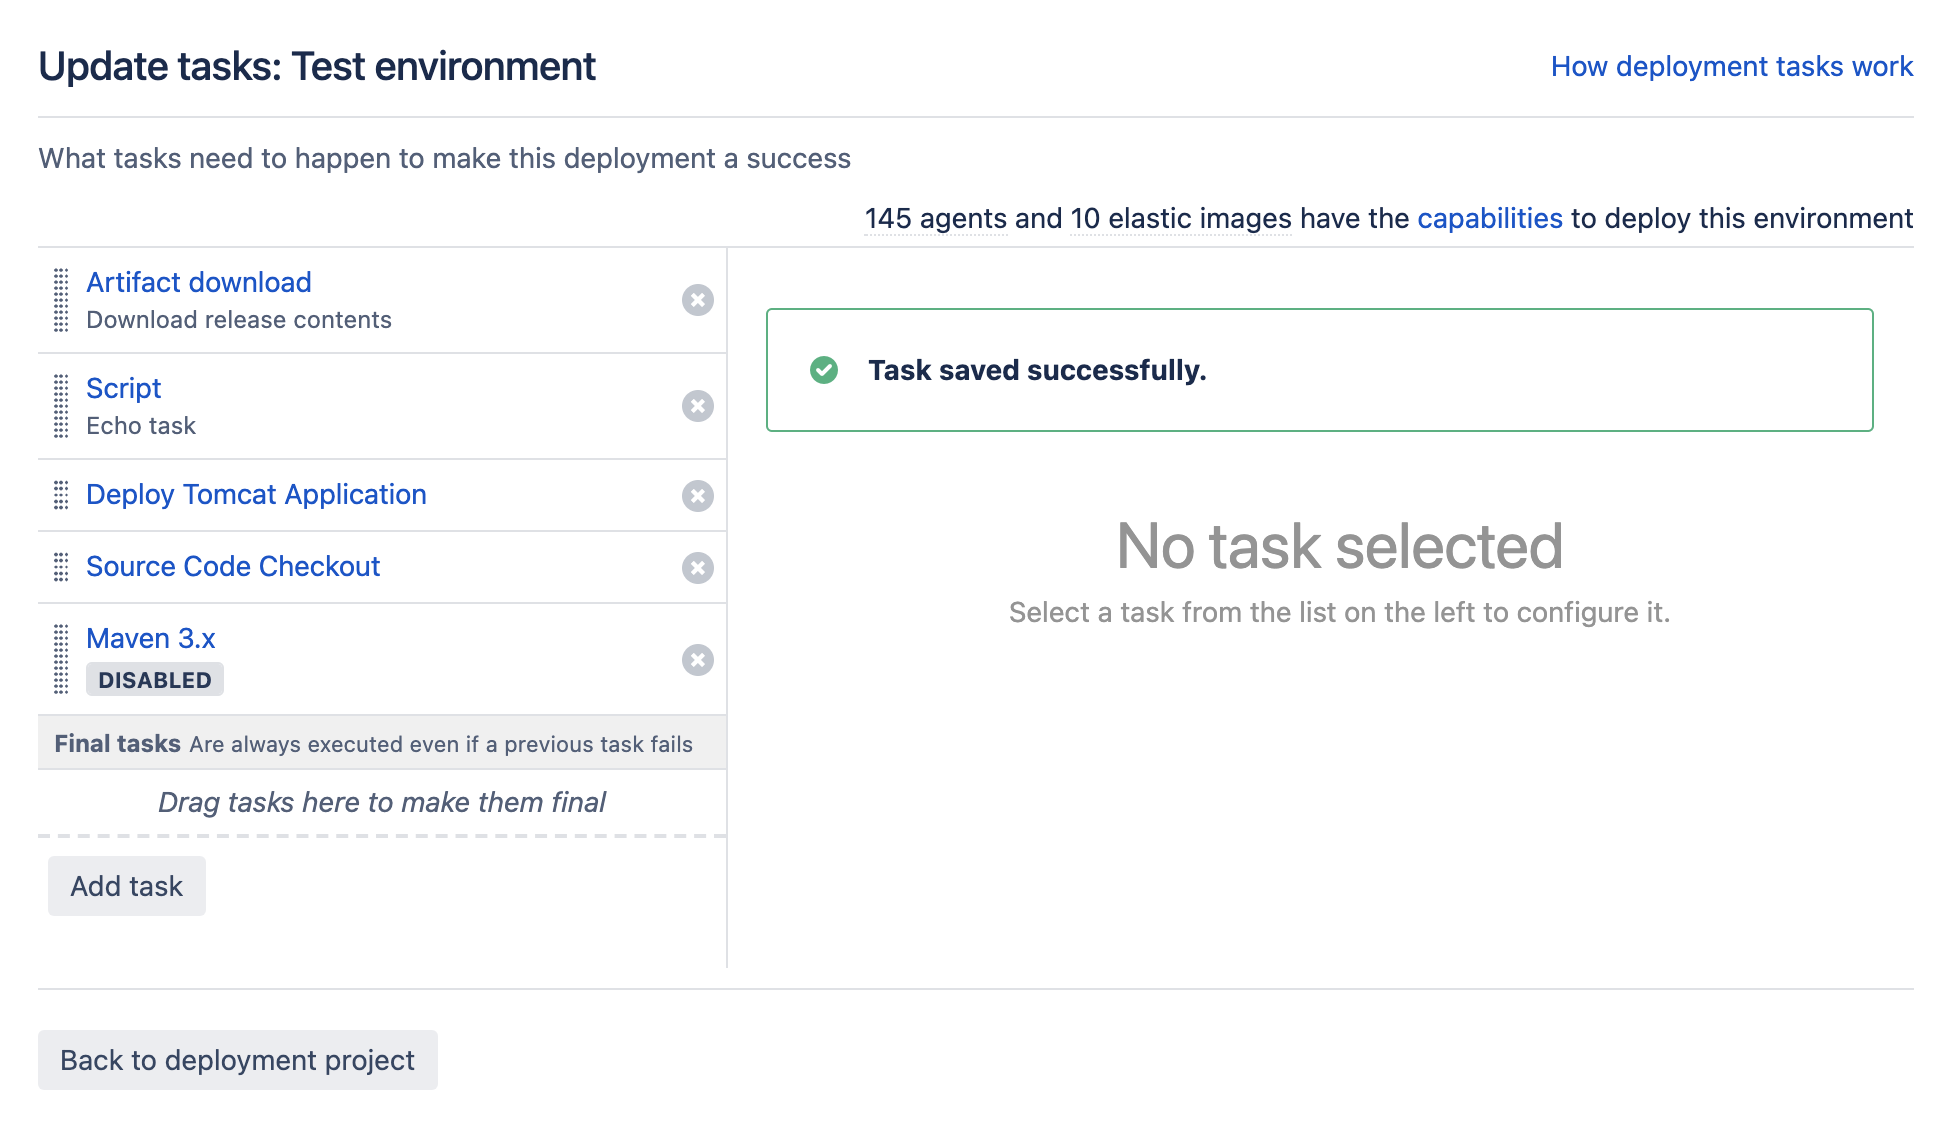 A list of tasks for deployment project